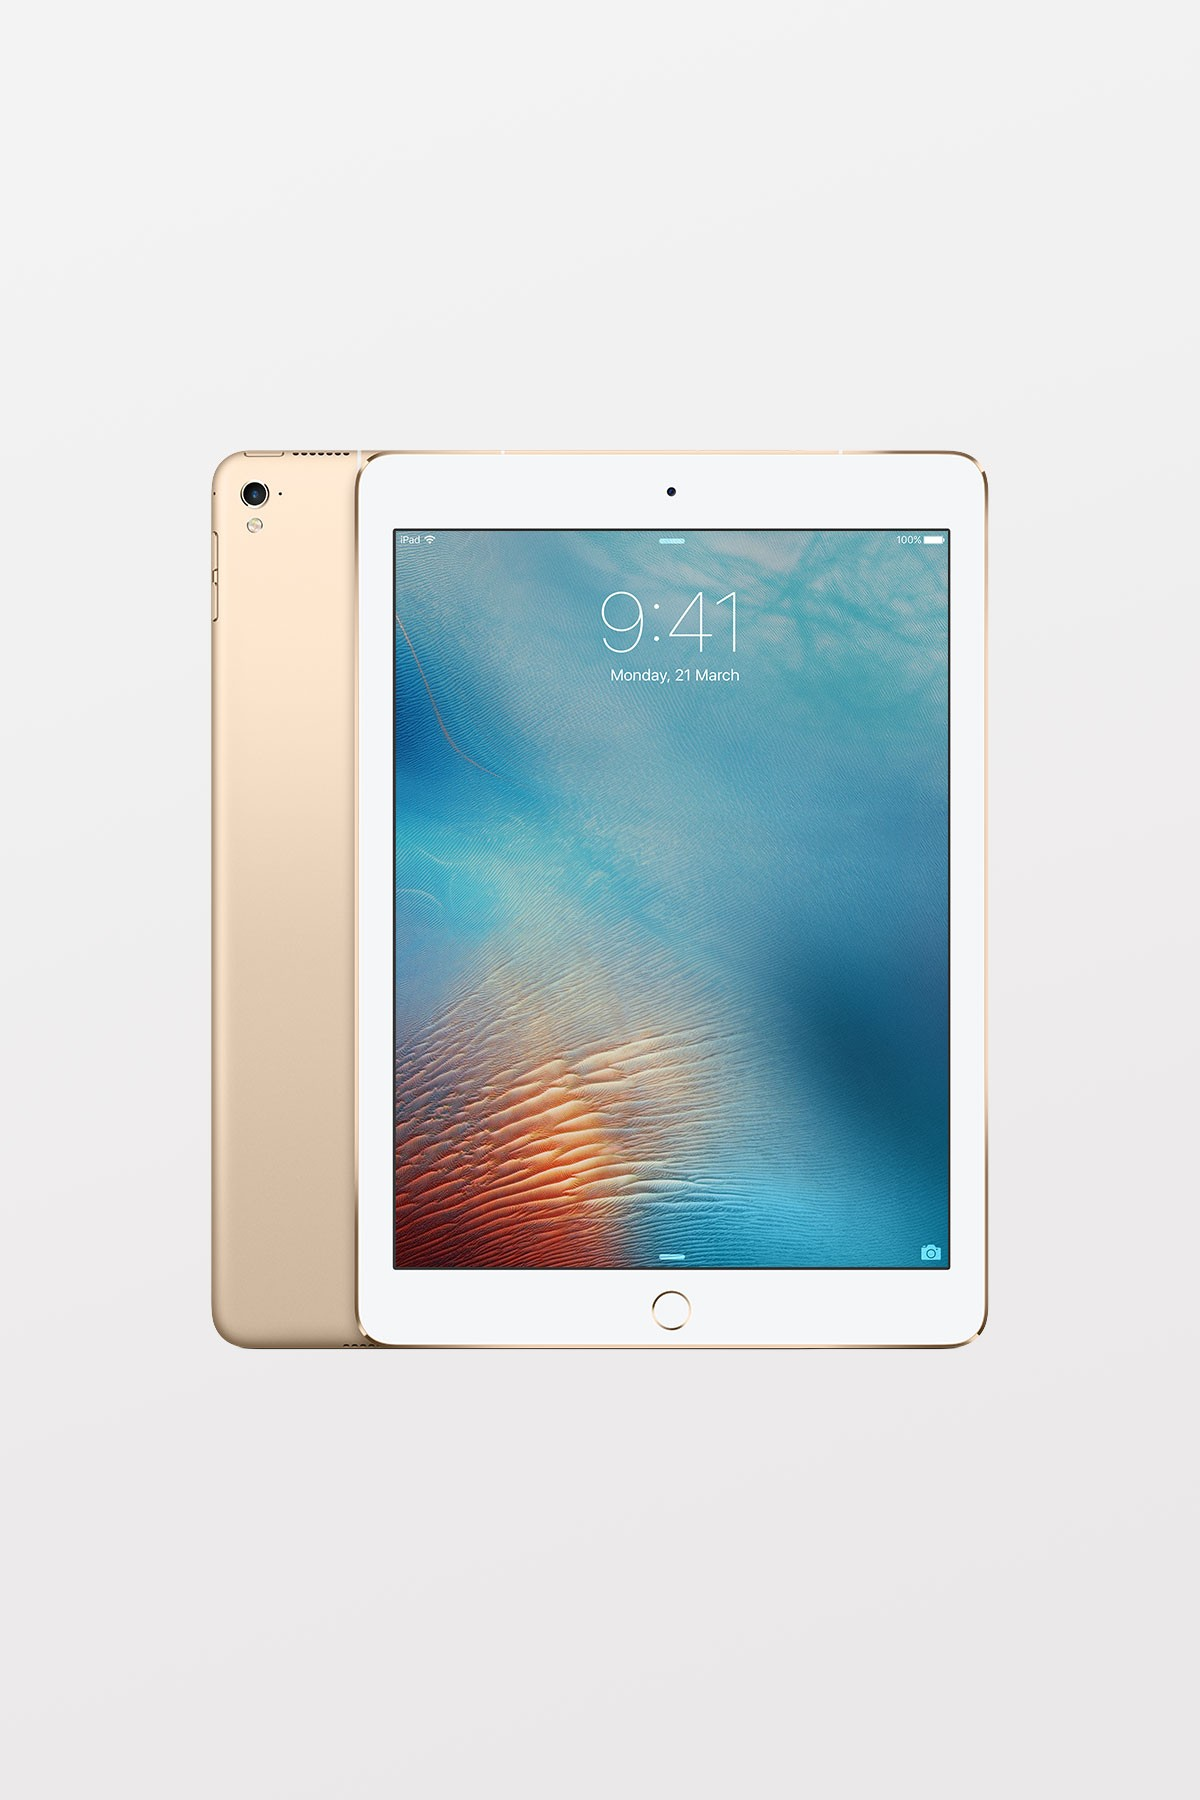 Apple iPad Pro 9.7-inch Wi-Fi Cellular 256GB - Gold - Refurbished